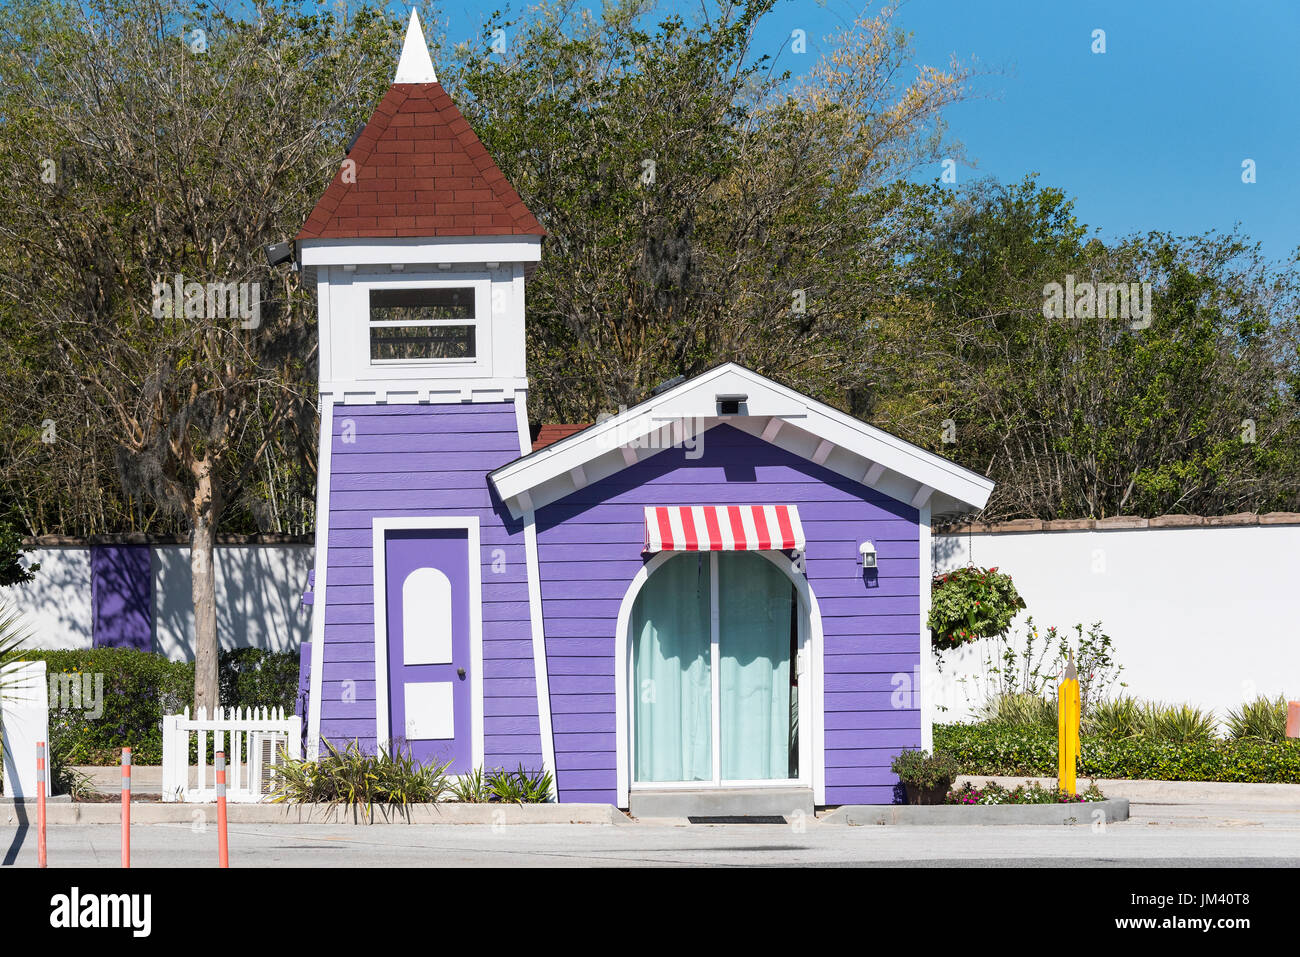 Entrance to the 'Give Kids the World' vacation village in Kissimmee Florida. - Stock Image